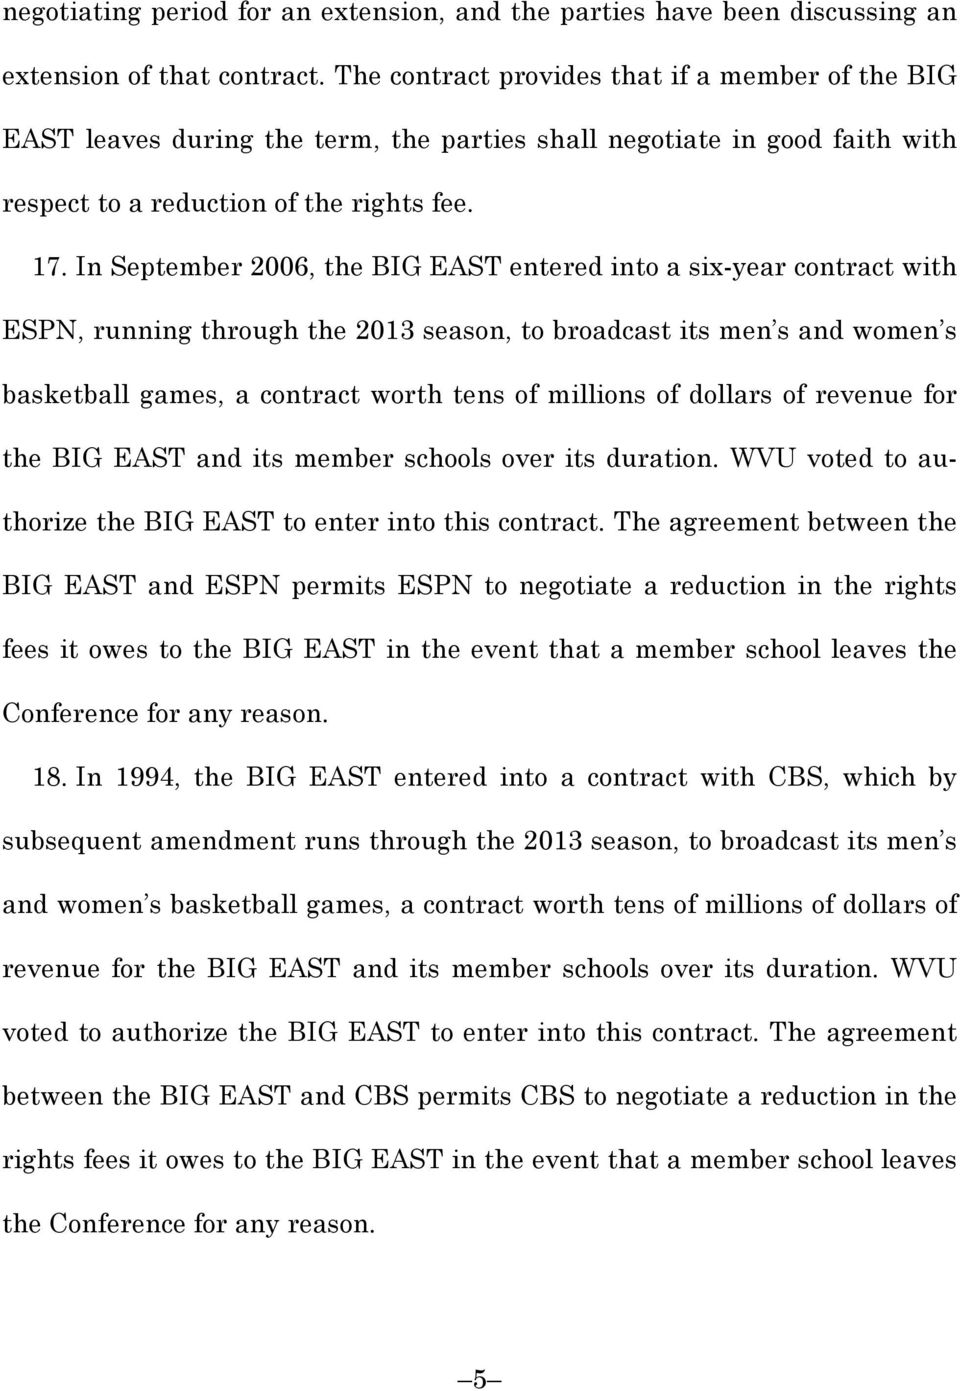 In September 2006, the BIG EAST entered into a six-year contract with ESPN, running through the 2013 season, to broadcast its men s and women s basketball games, a contract worth tens of millions of